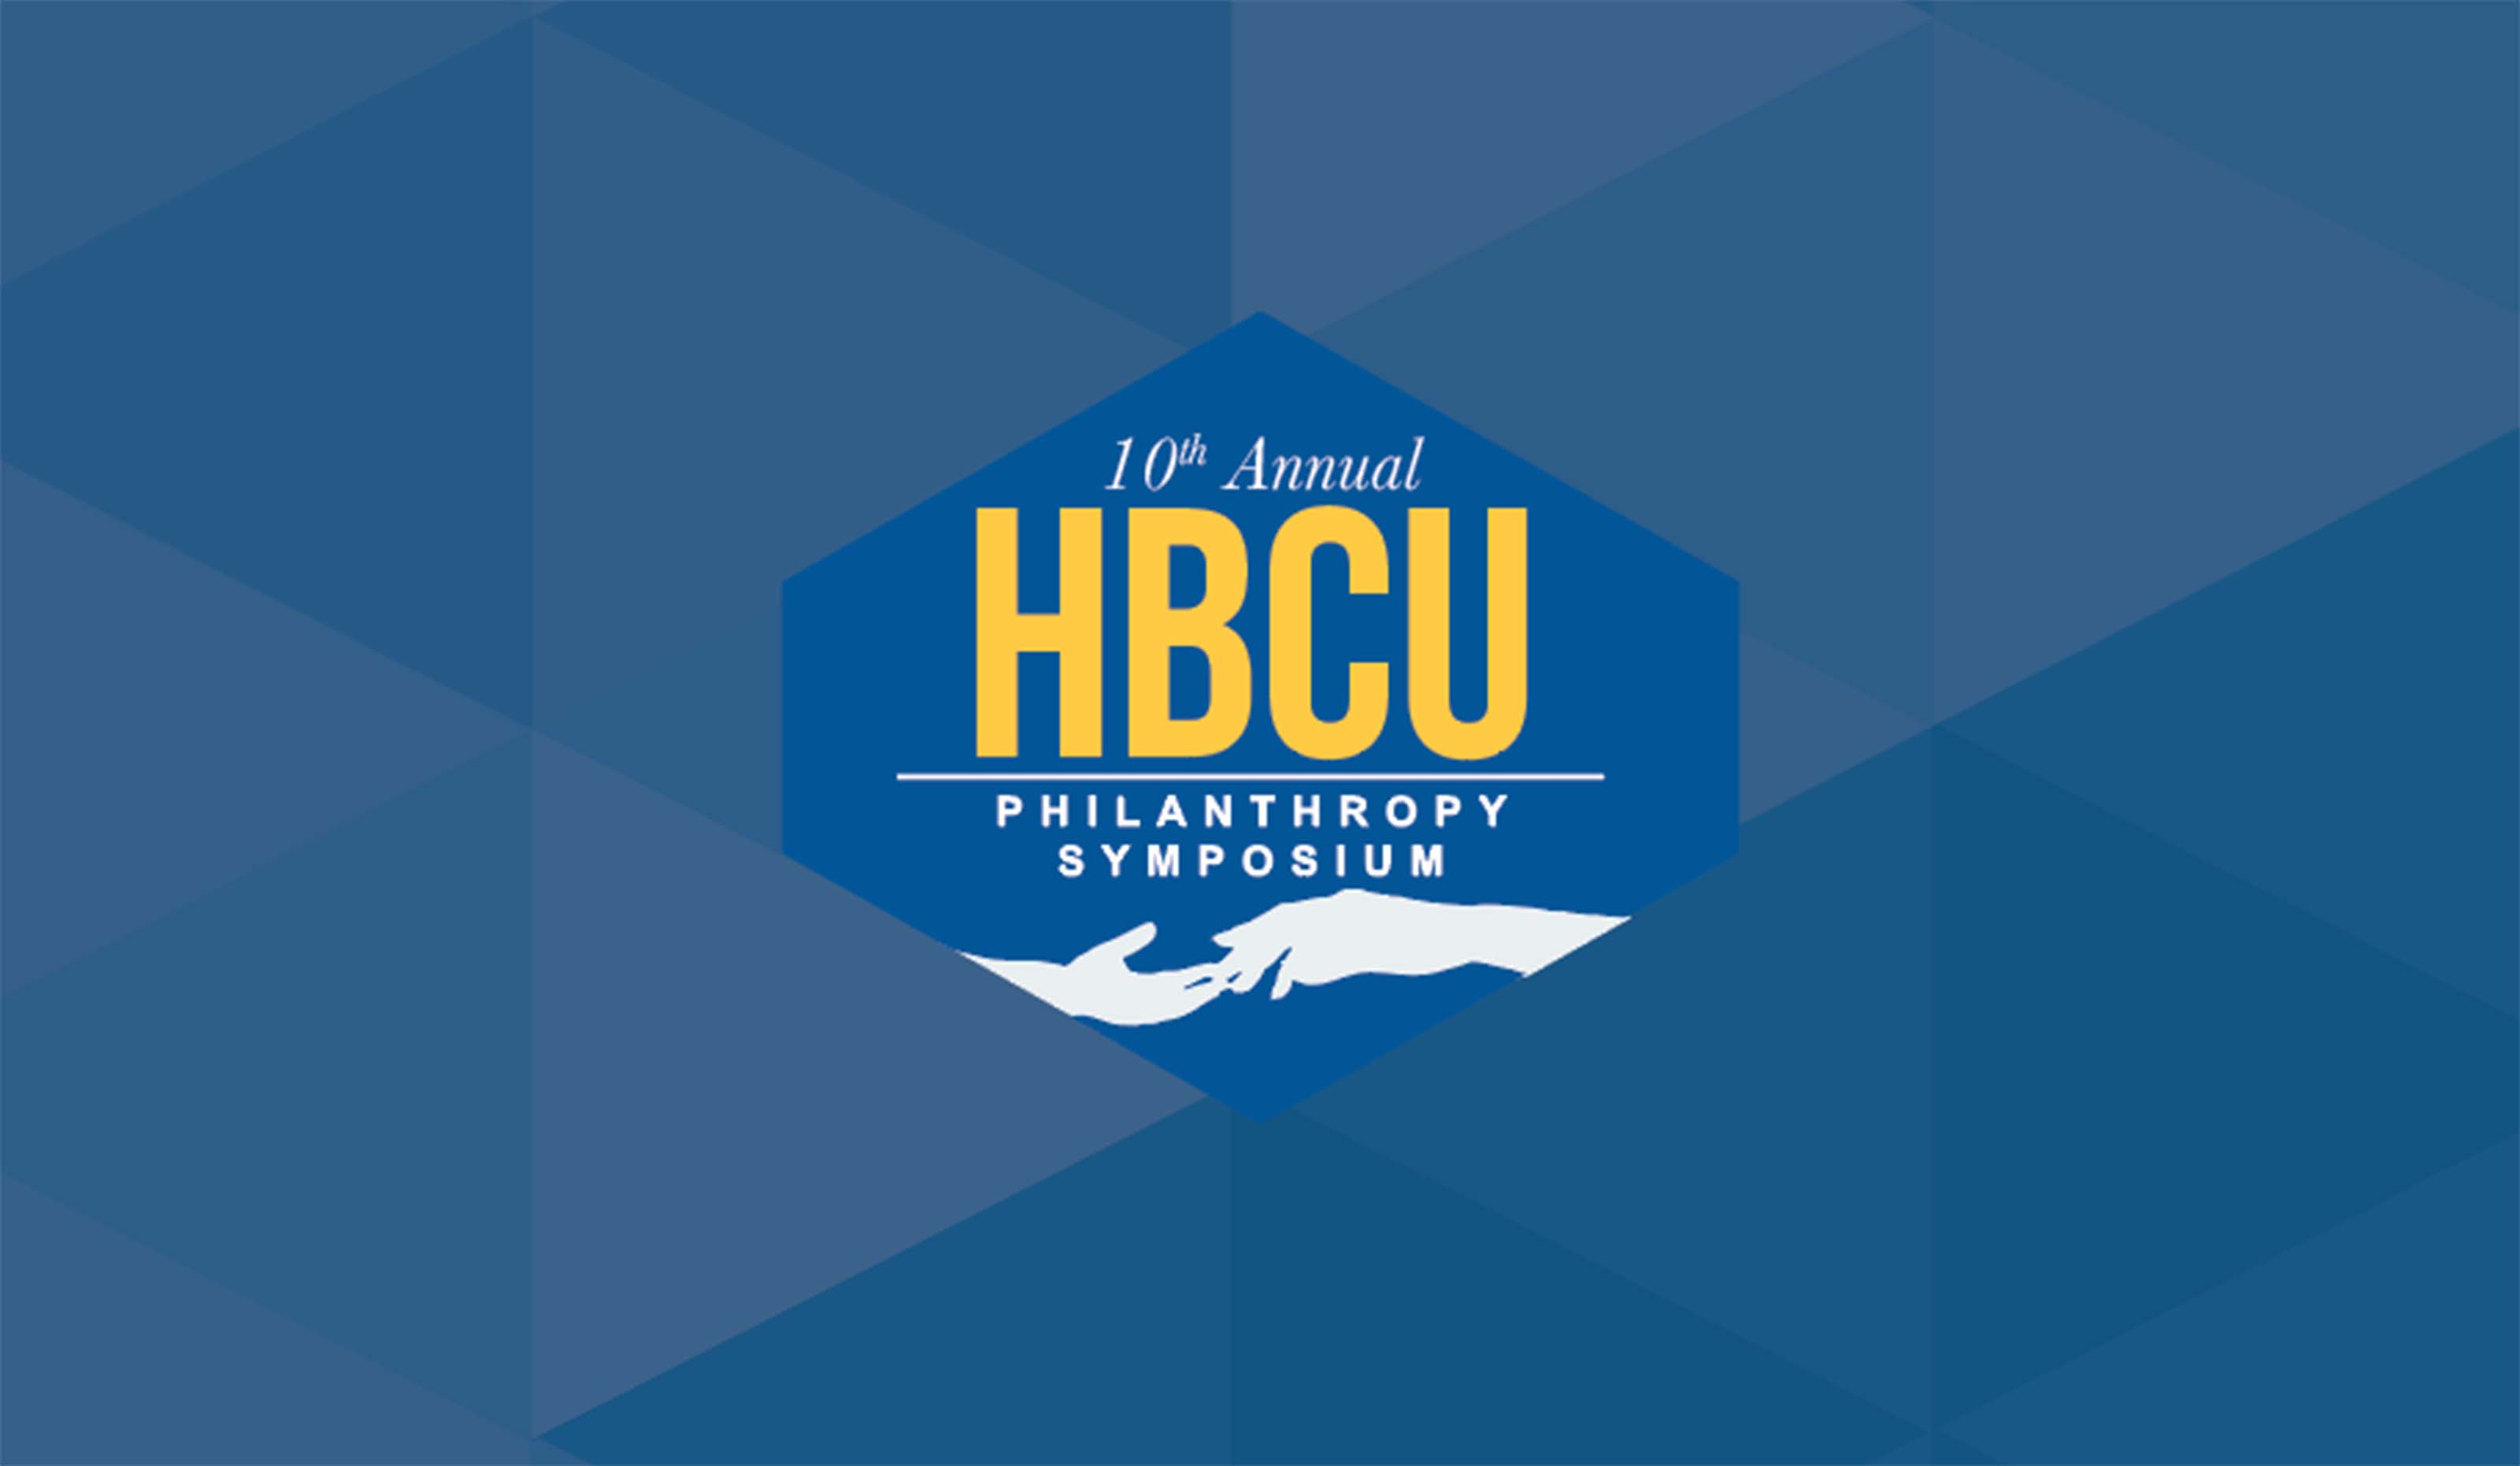 COVID-19 could not stop Delaware State University from hosting its annual HBCU Philanthropy Symposium on July 22-24.